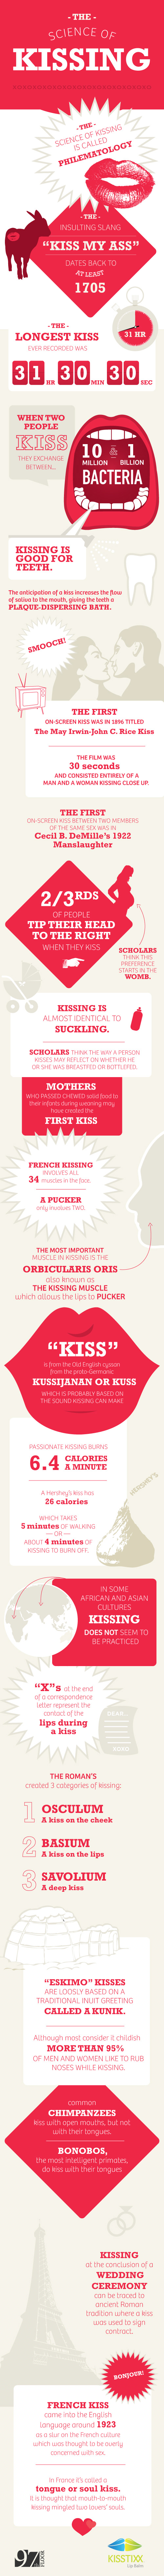 The Science Of Kissing Kisstixx Kissing Facts Weird Facts